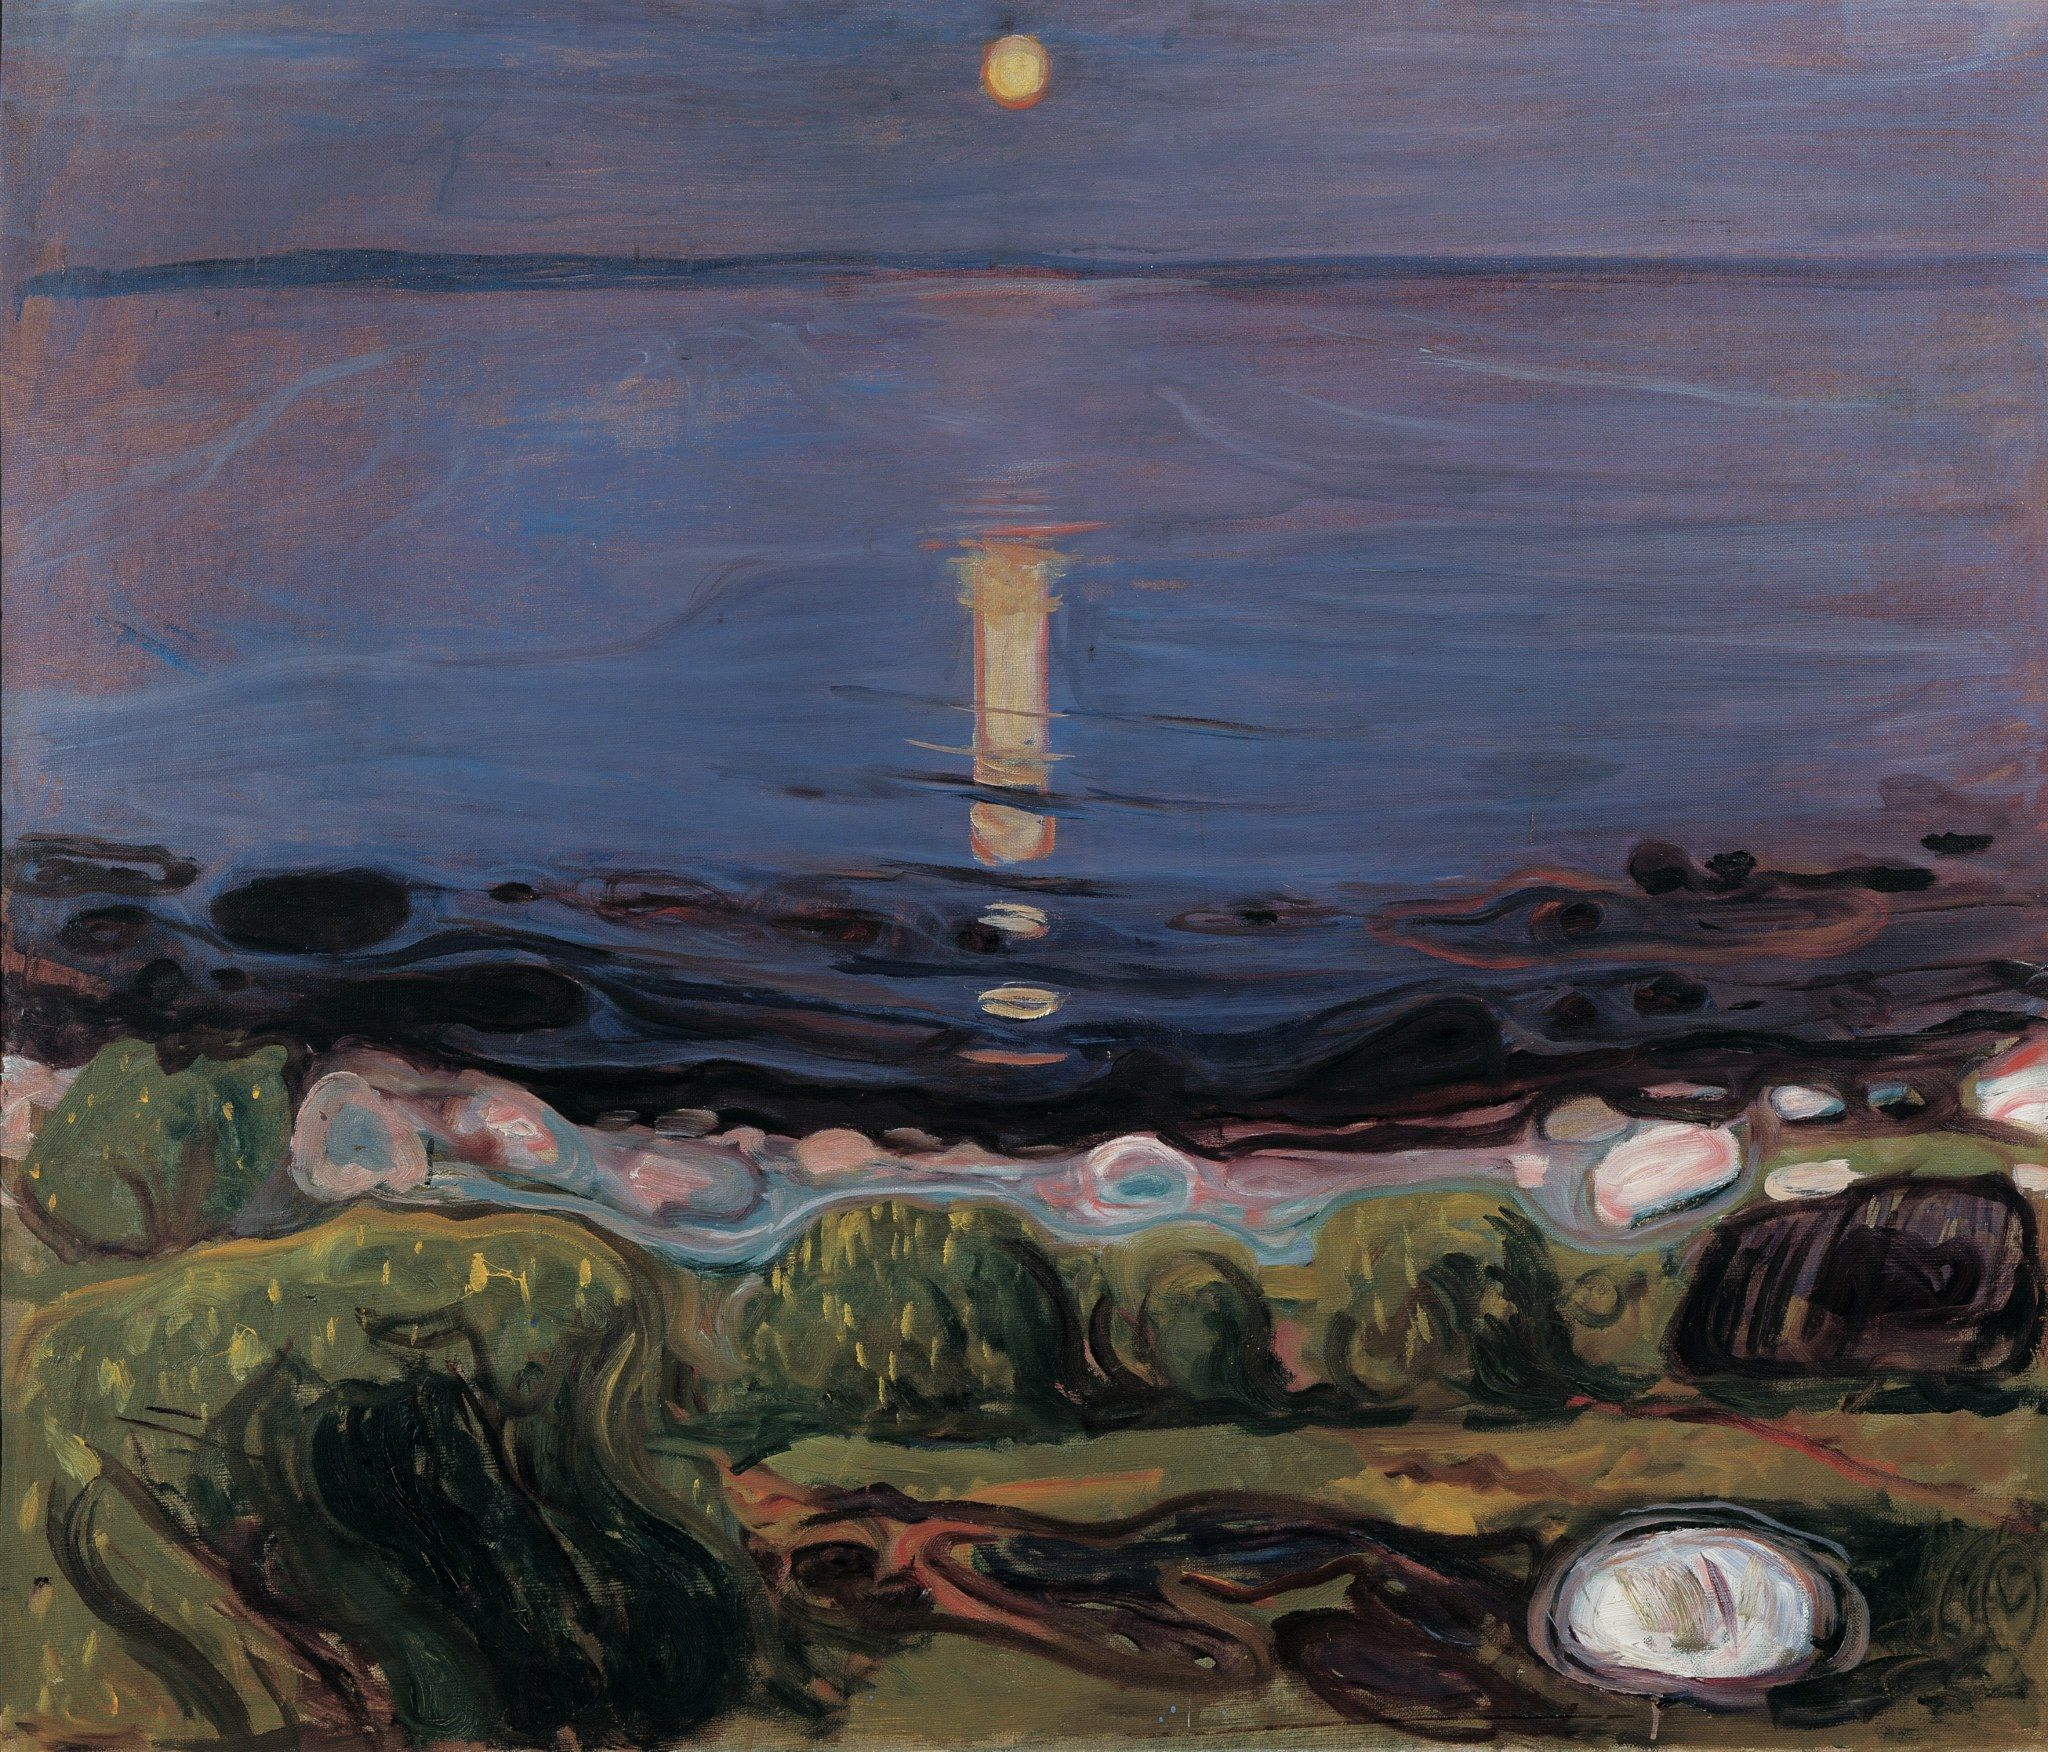 Edvard Munch Summer Night by the Beach 1902-03 Oil on canvas 103 x 120 cm Private collection